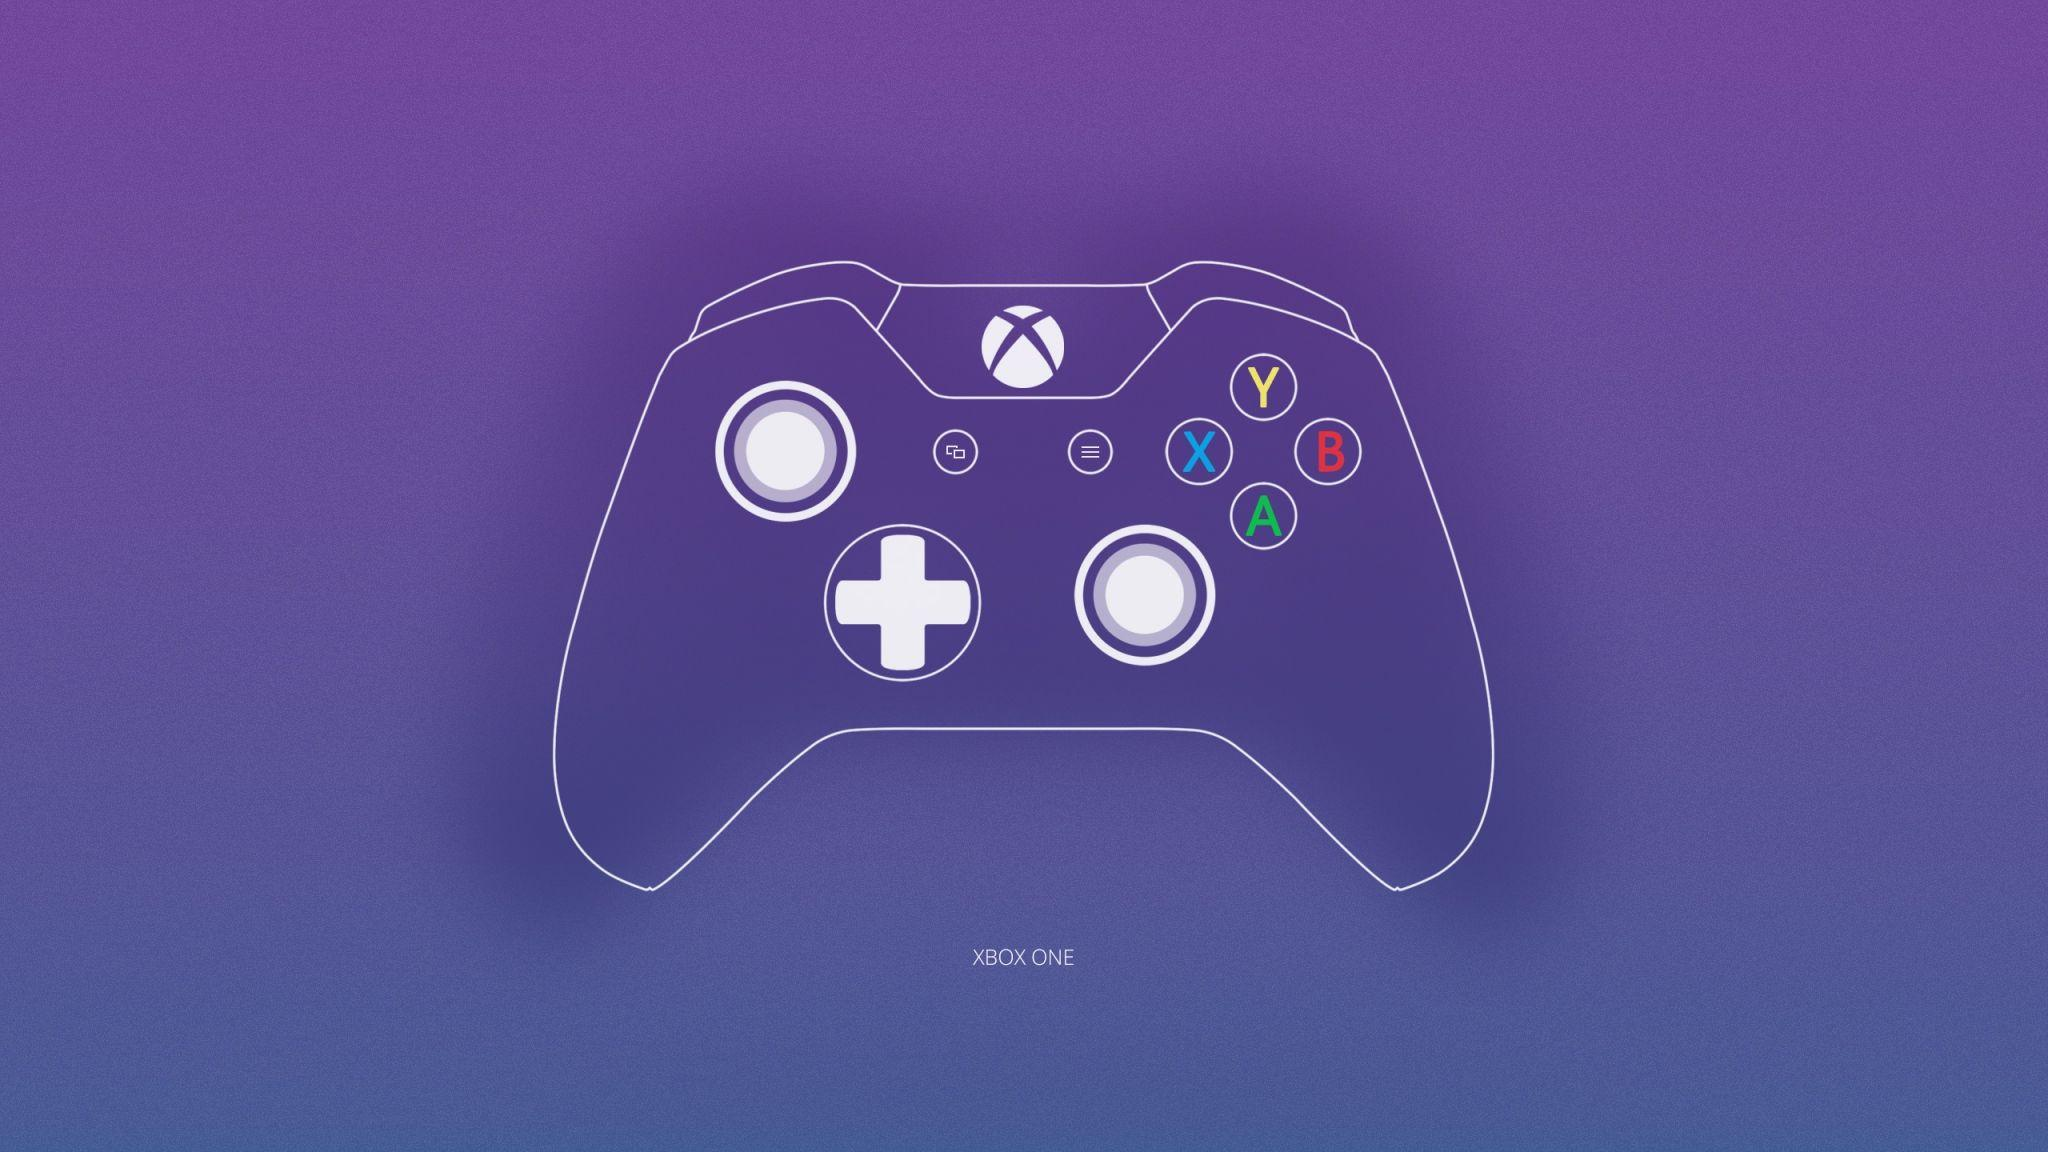 Xbox One Wallpapers: Xbox One S Wallpapers